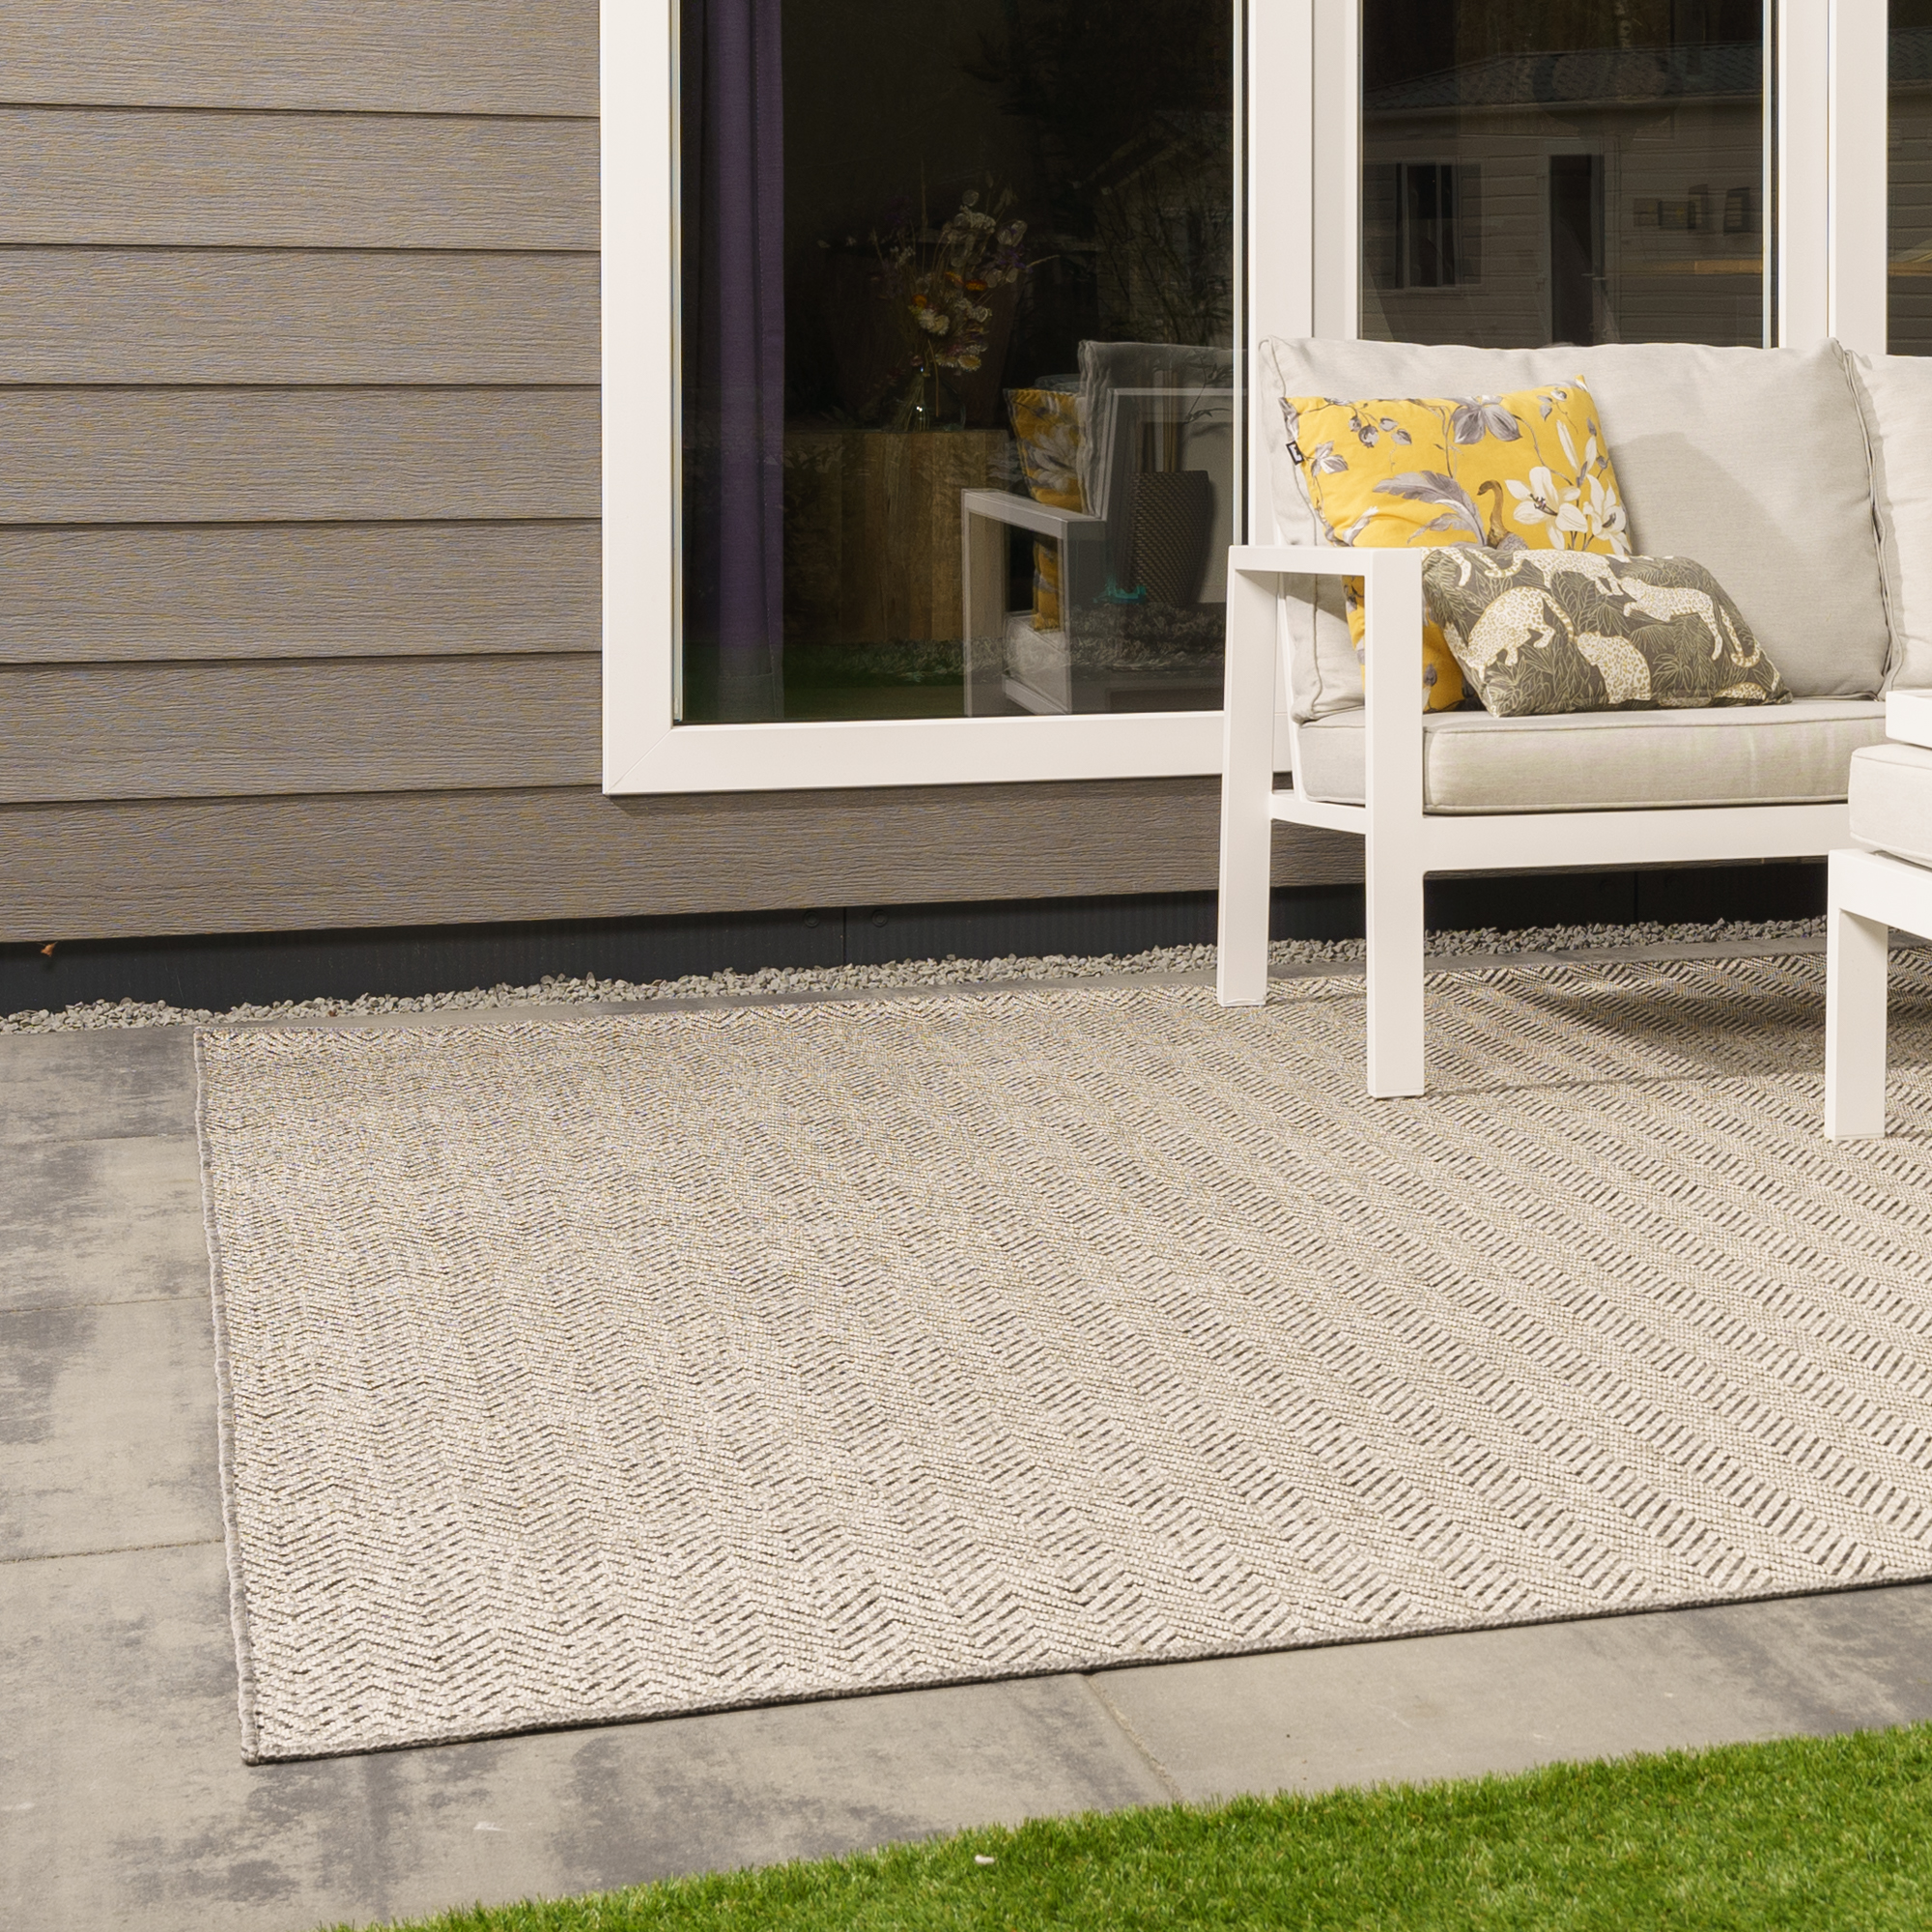 Vloerkleed Xilento Outdoor 4027-17